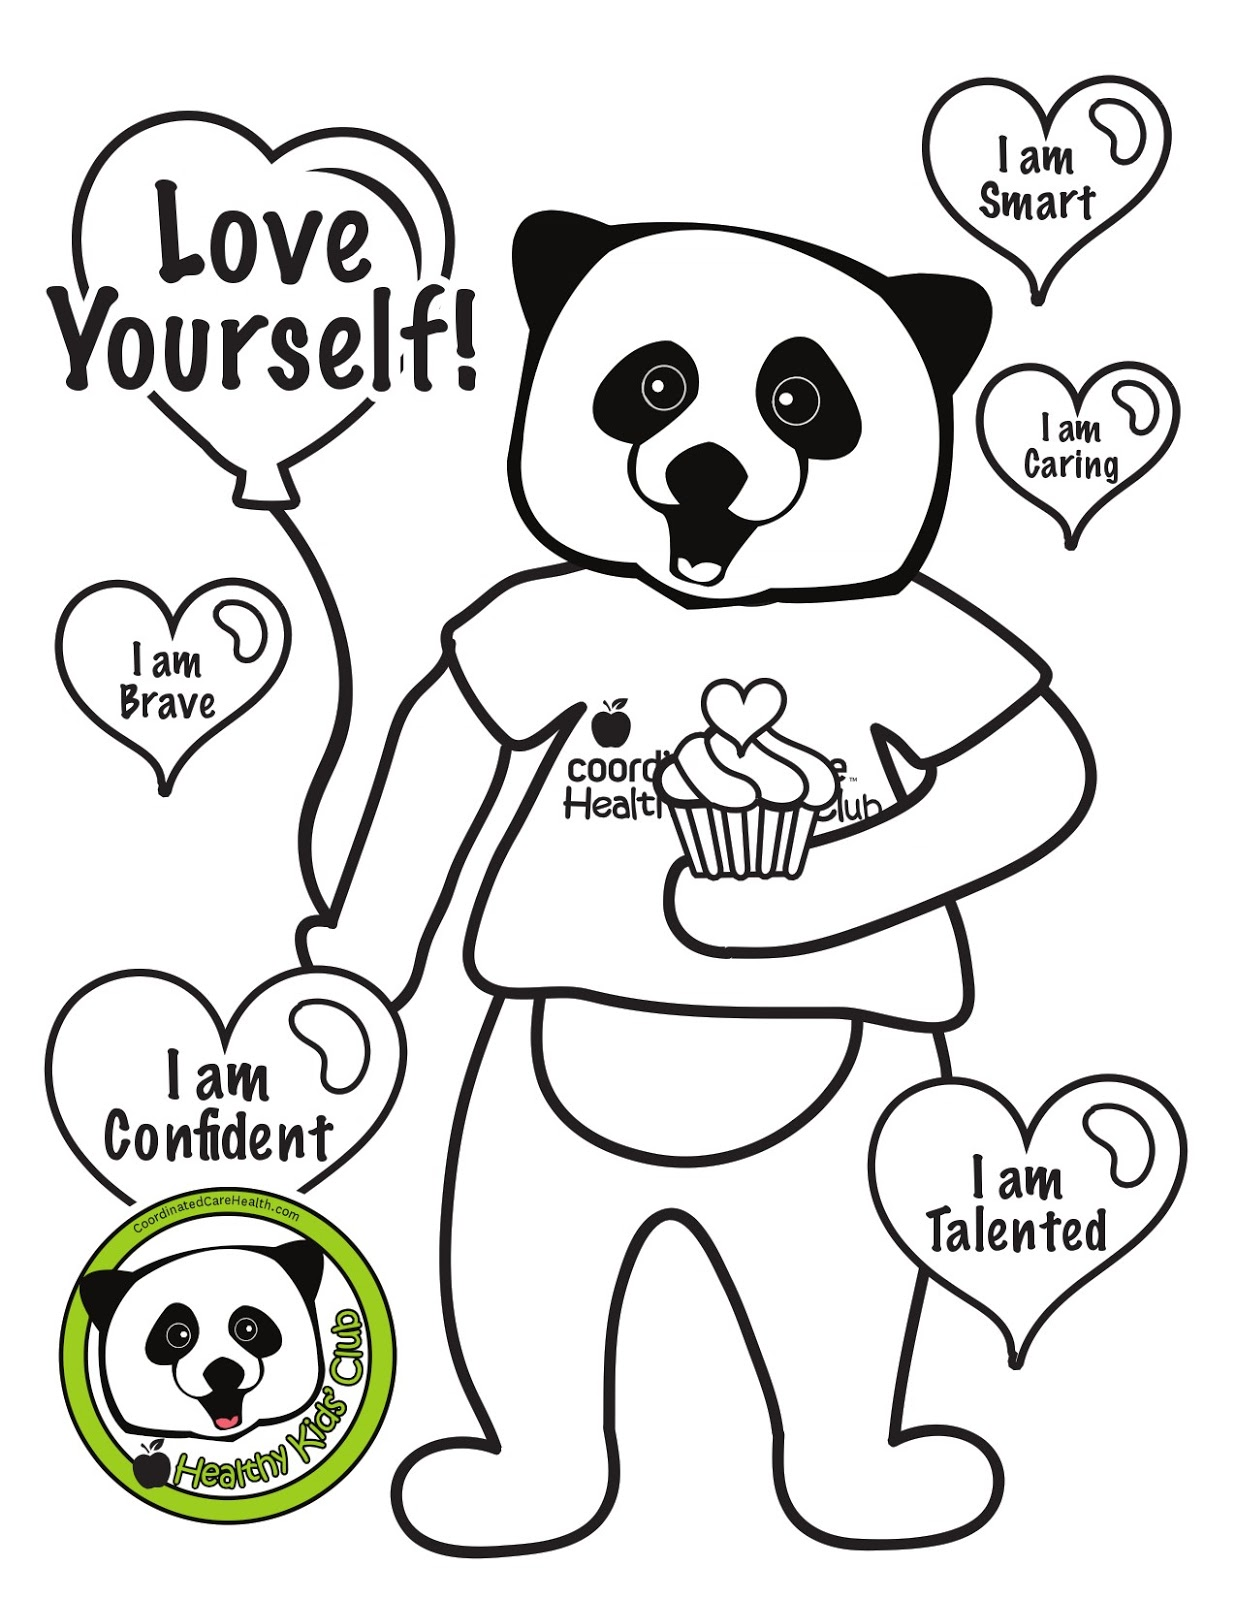 Free Caring Coloring Pages, Download Free Clip Art, Free Clip Art ... | 1600x1236